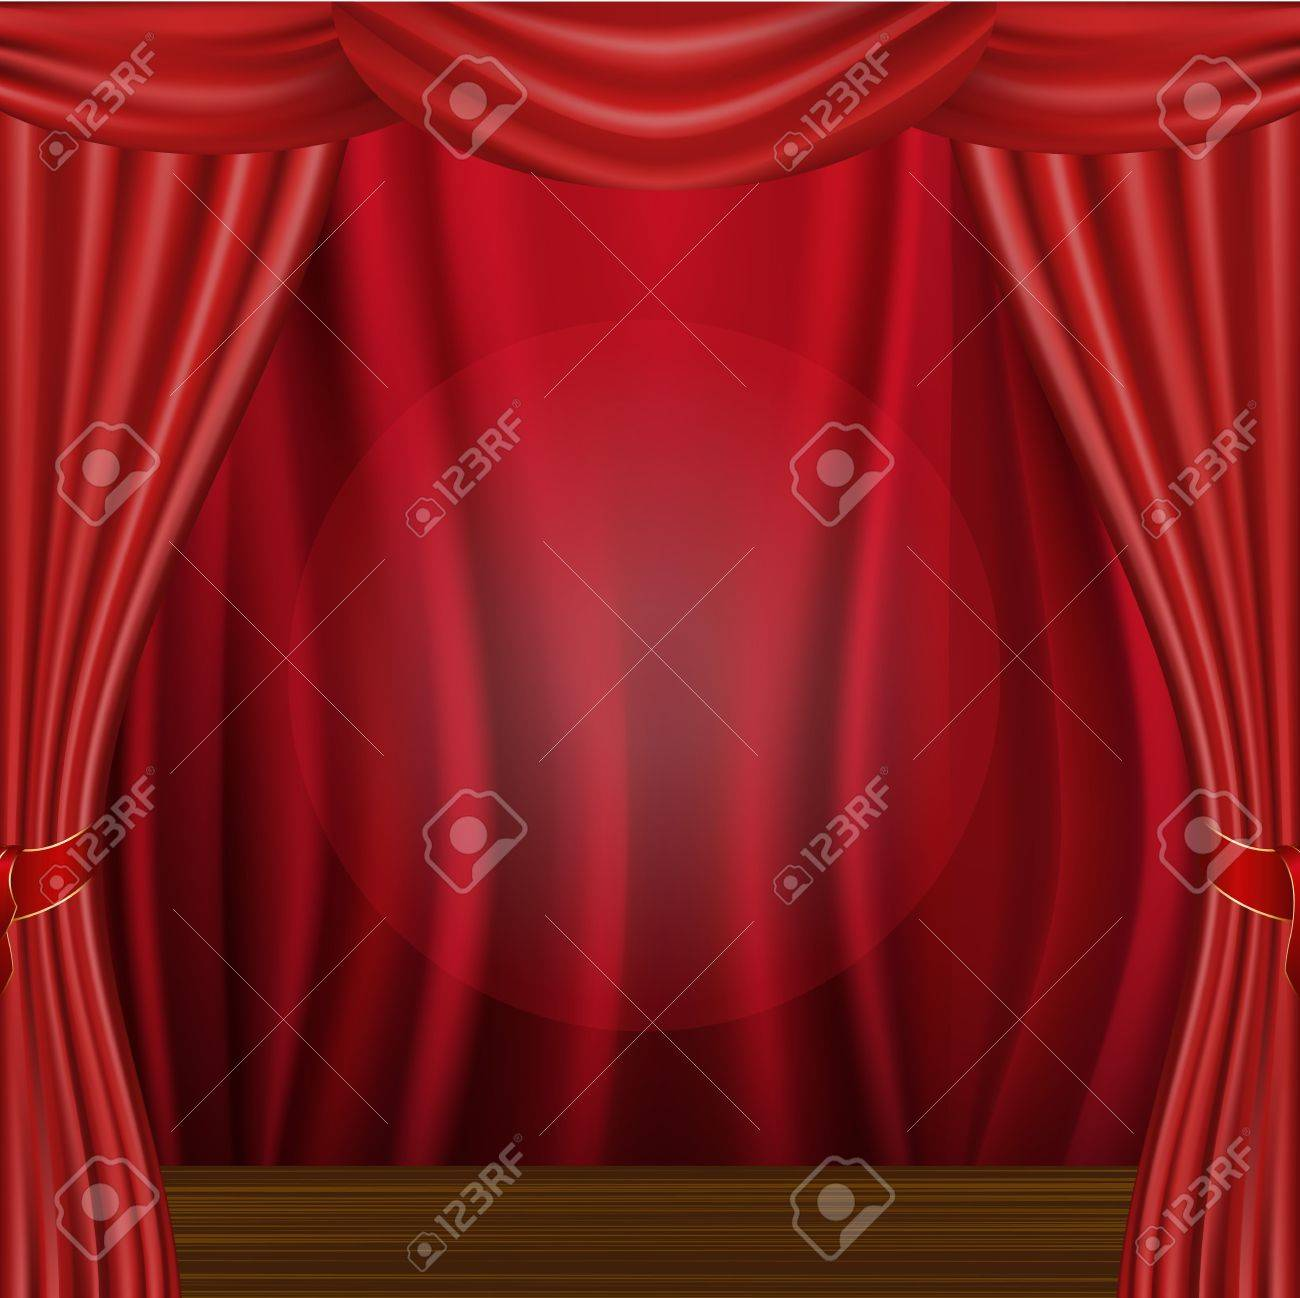 Wood Scene And Curtain Stock Vector - 10135946